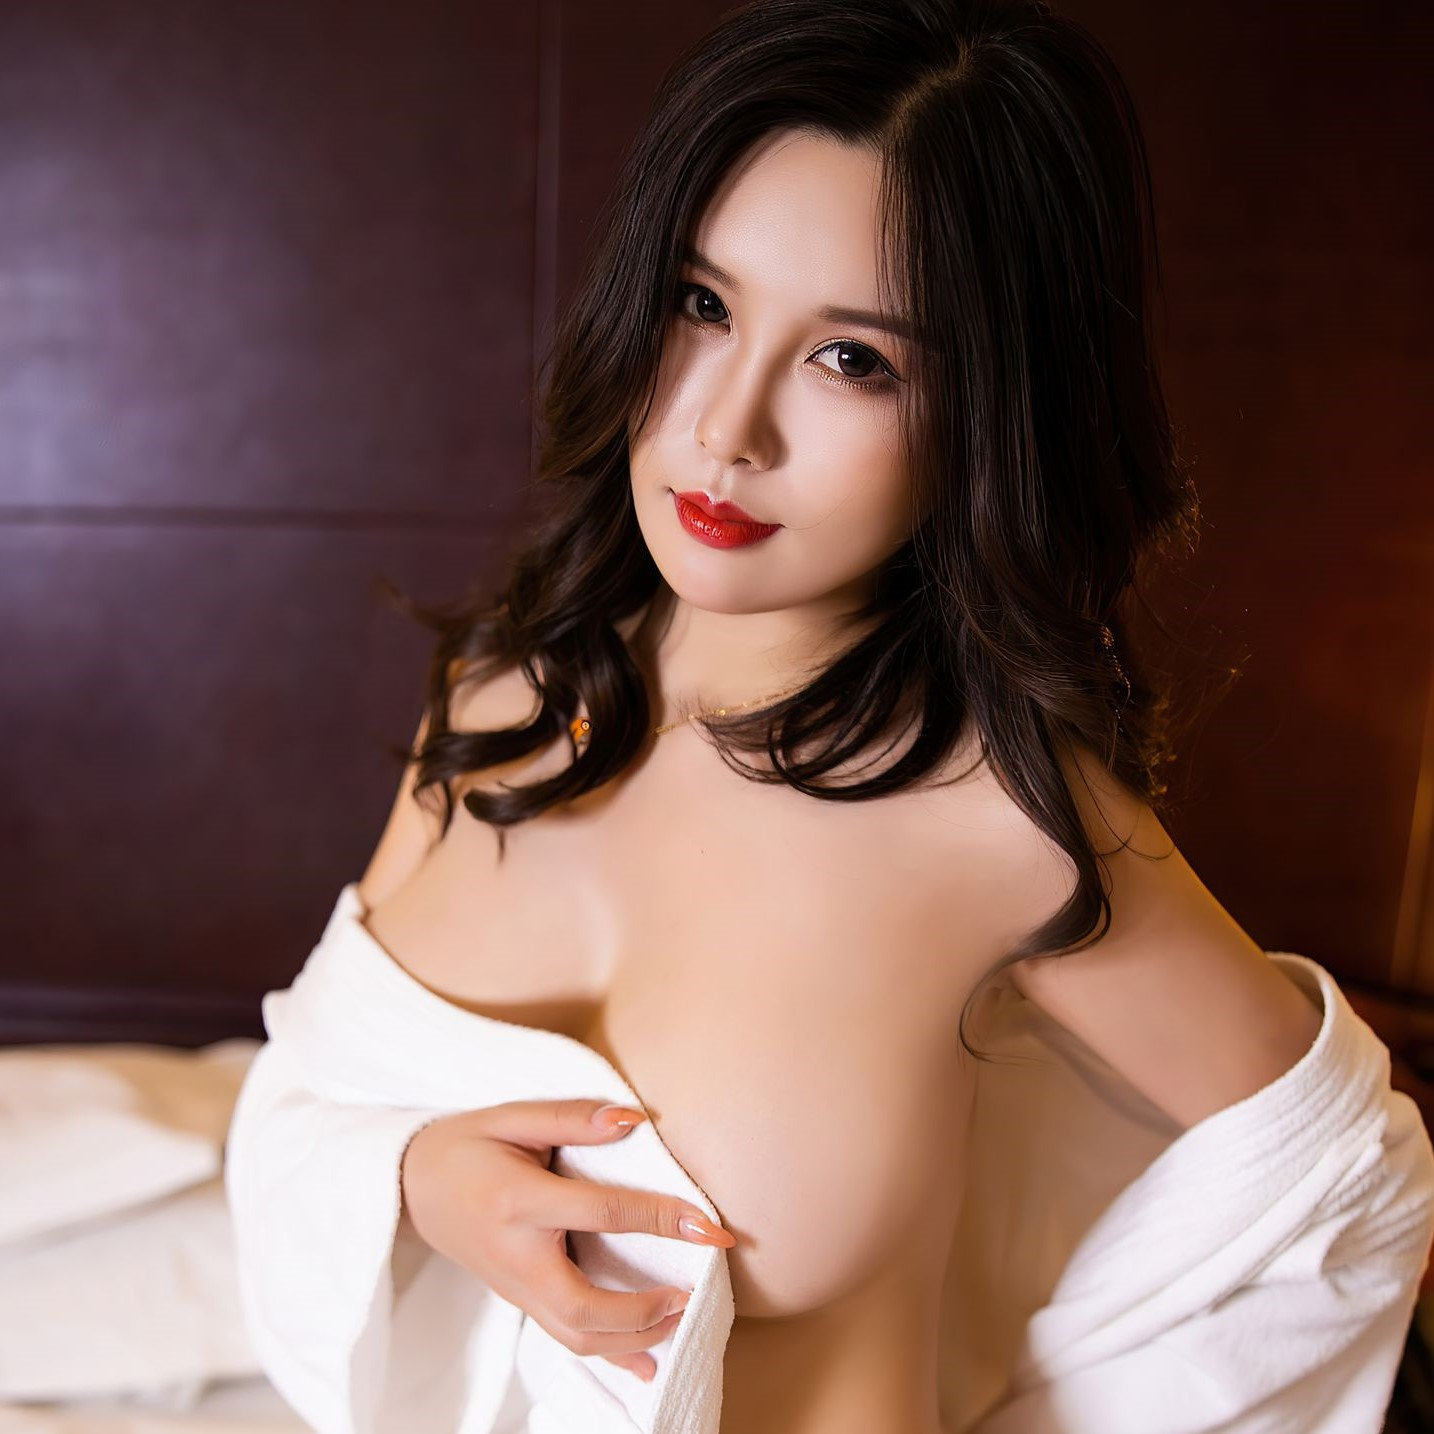 All Pictures 周思乔Betty - Zhou Si Qiao model